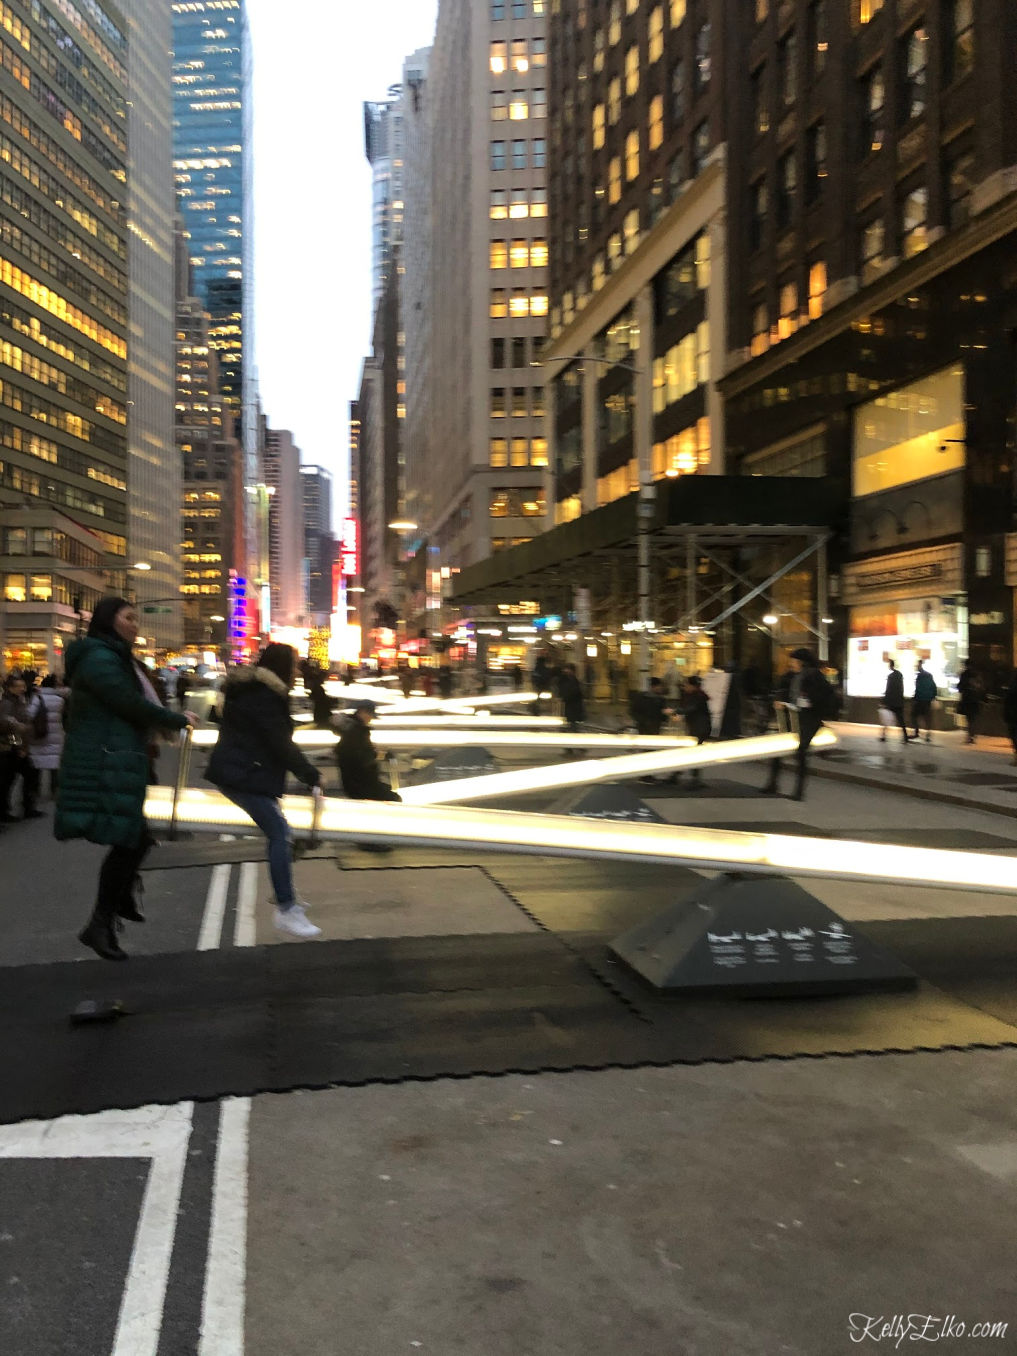 Giant glow in the dark teeter totters in New York City kellyelko.com #nyc #newyork #artinstallation #travel #travelblogger #kellyelko Kelly's Stamp of Approval 12